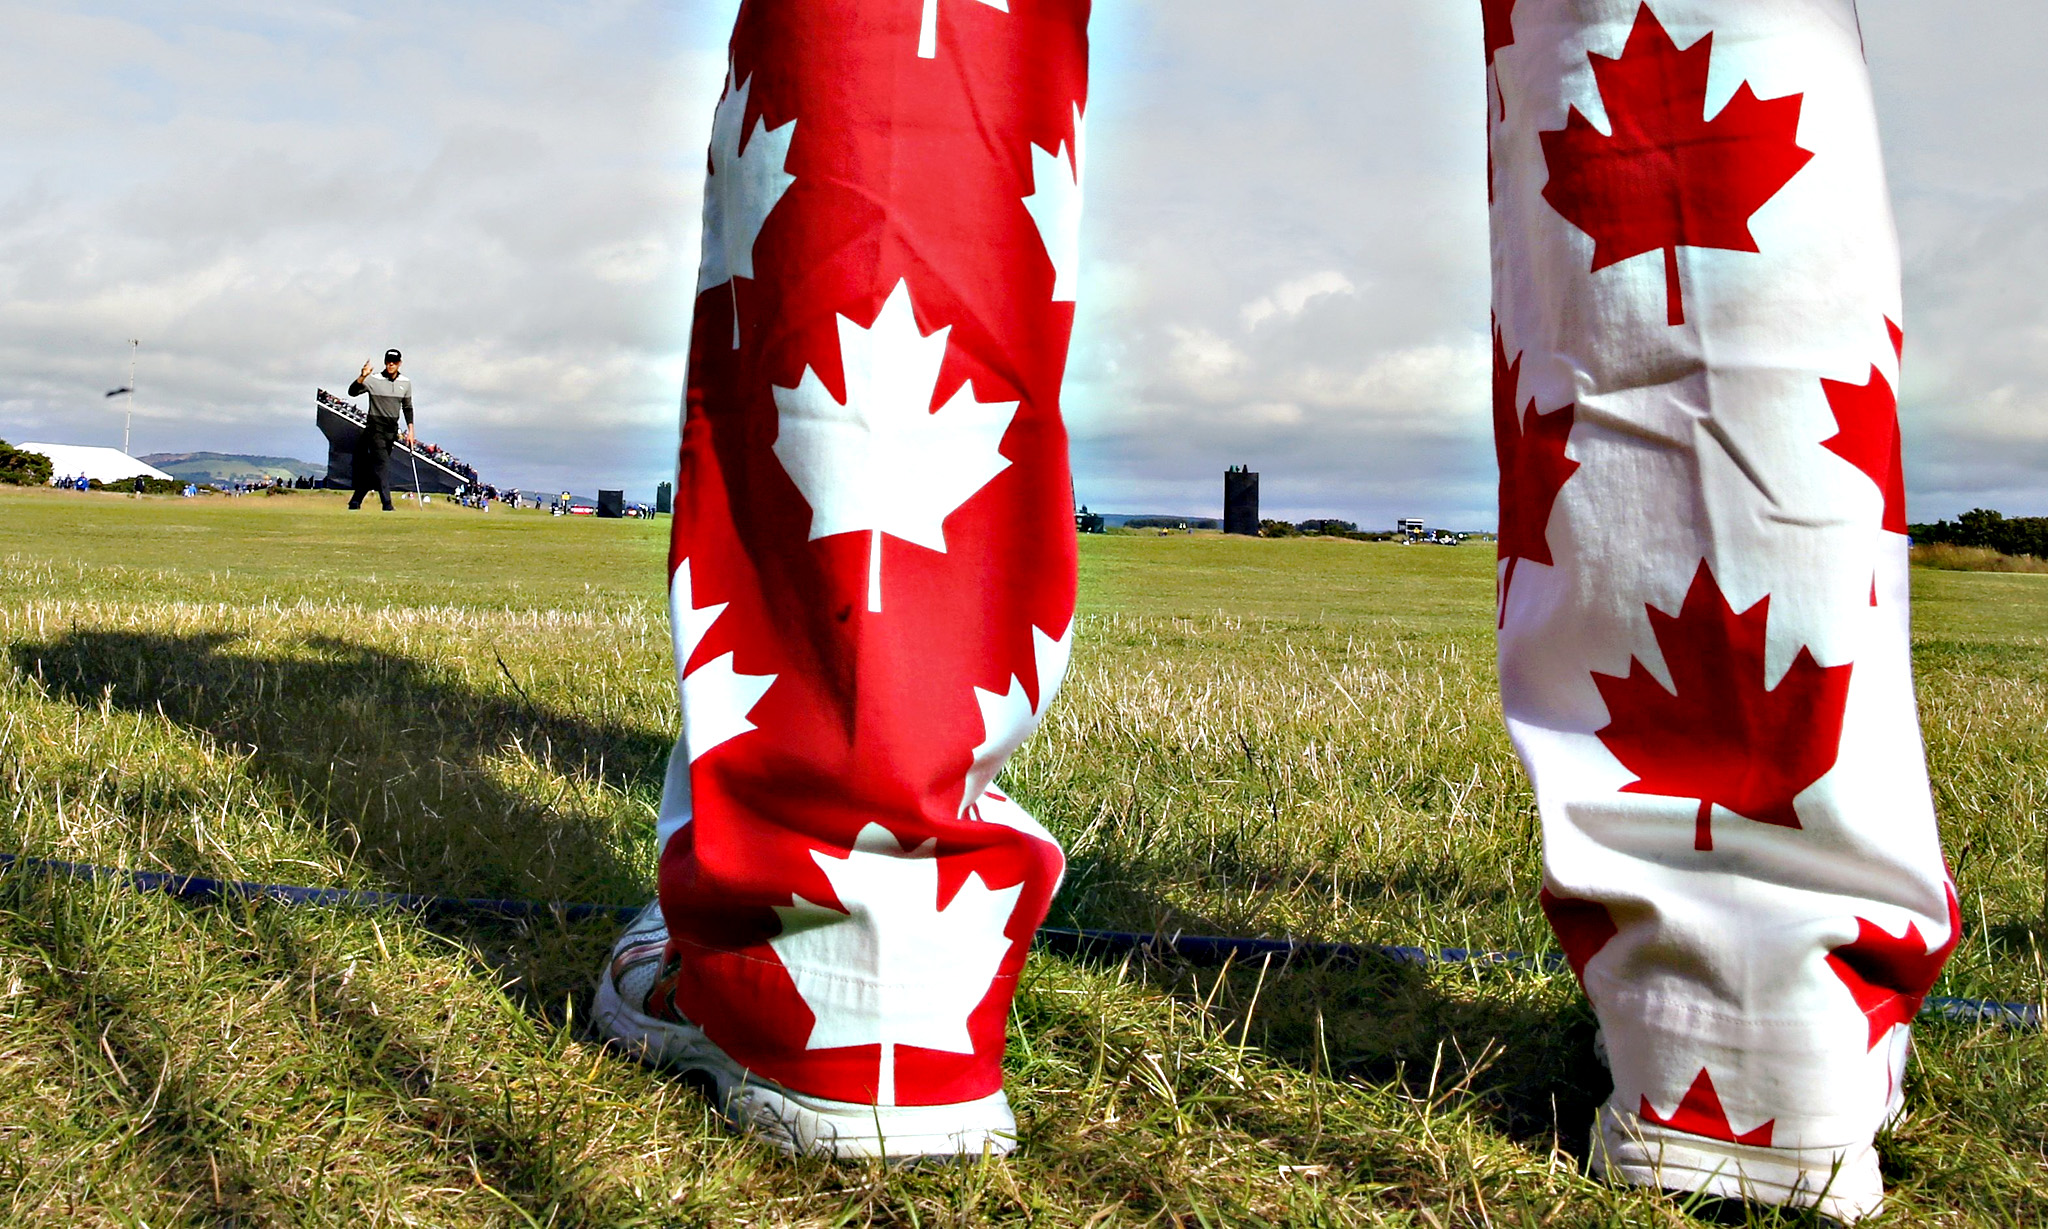 A spectator wearing trousers in the design of the Cnadaian flag watches as Graham DeLaet of Canada (L) makes a birdie on the ninth hole during the first round of the British Open golf championship on the Old Course in St. Andrews, Scotland...A spectator wearing trousers in the design of the Cnadaian flag watches as Graham DeLaet of Canada (L) makes a birdie on the ninth hole during the first round of the British Open golf championship on the Old Course in St. Andrews, Scotland, July 16, 2015.